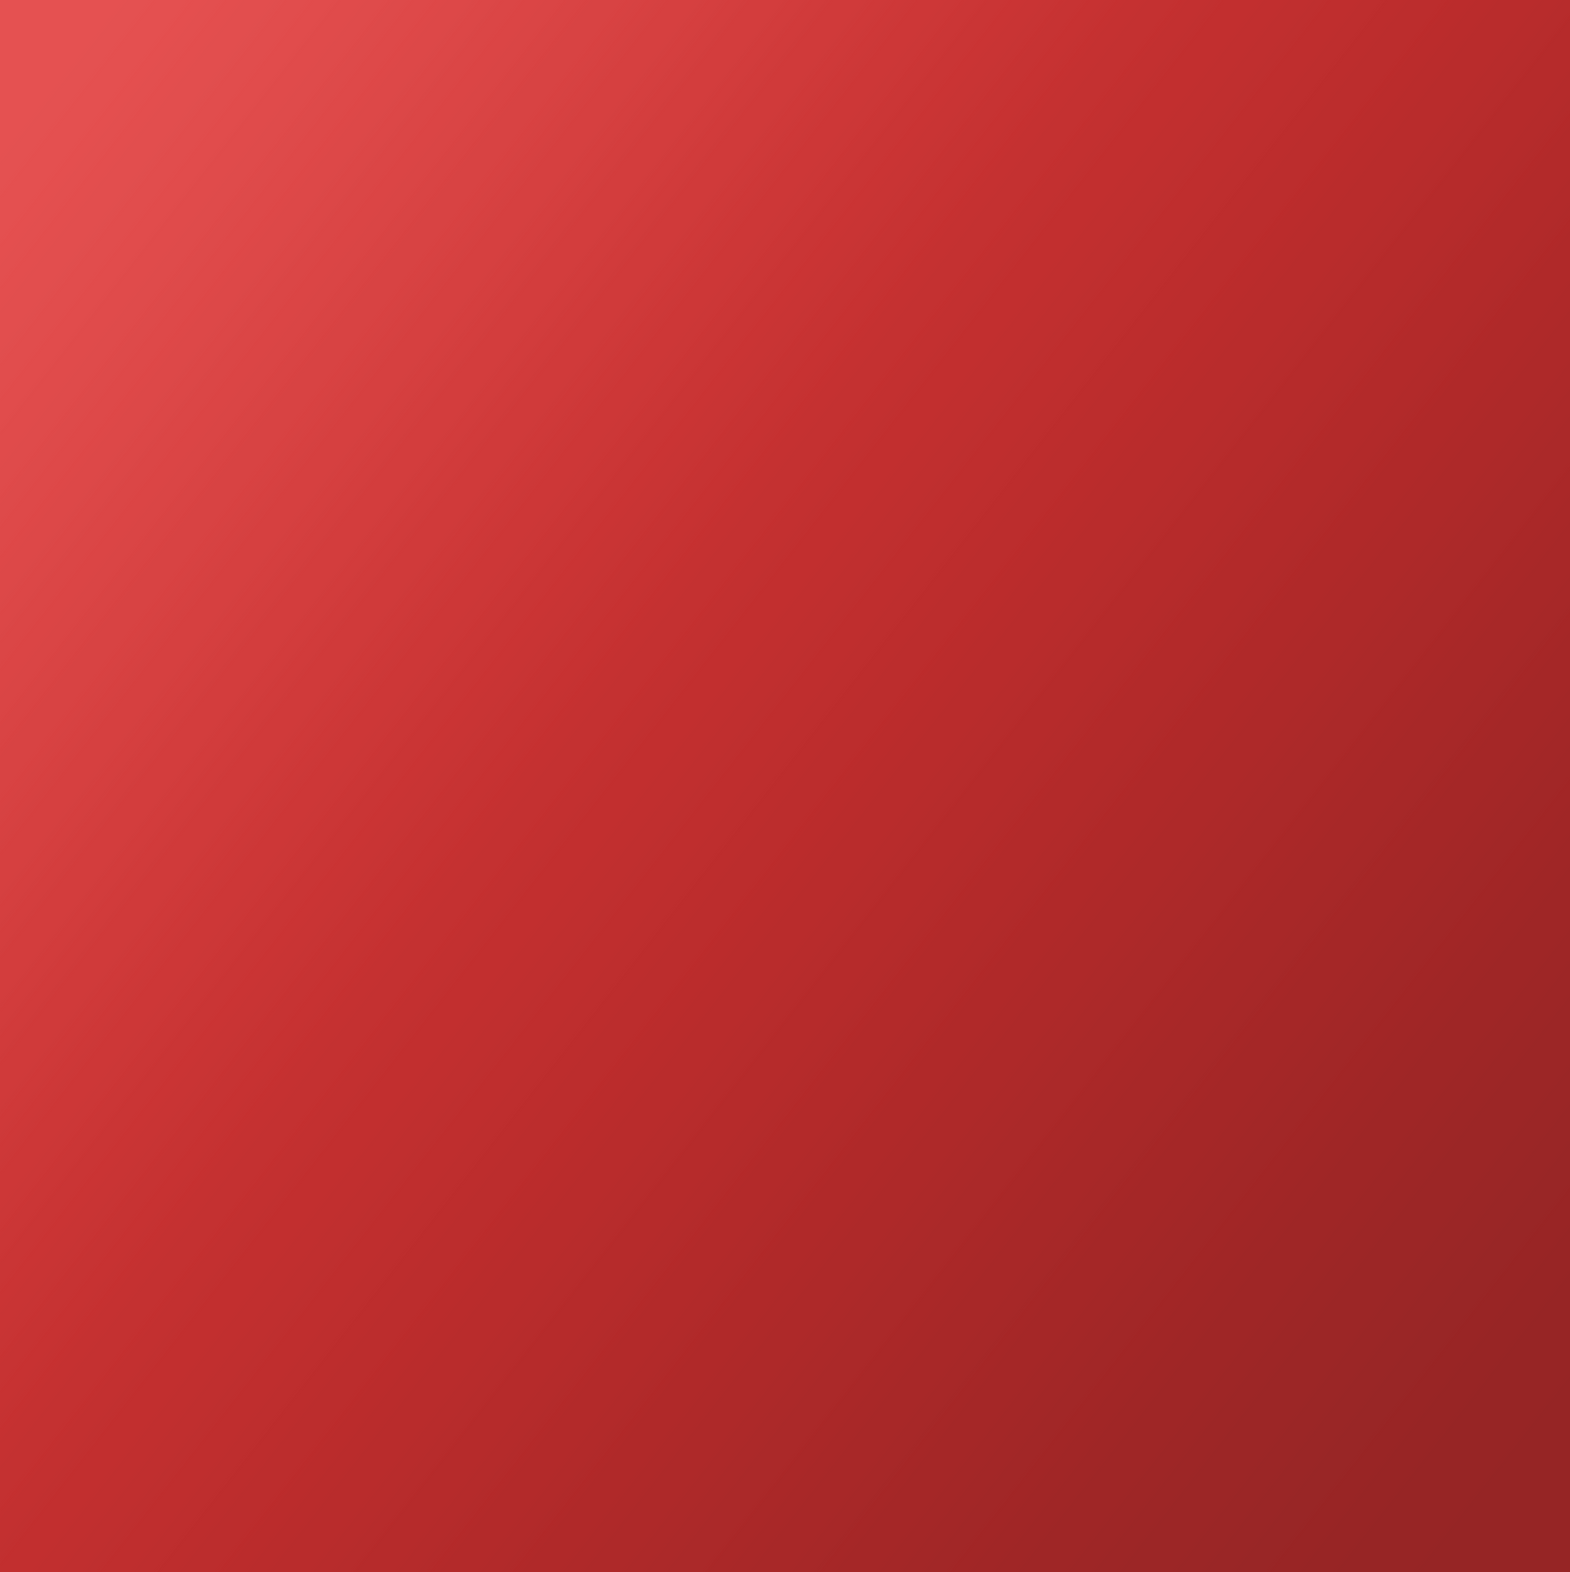 about-section-bg-red.png